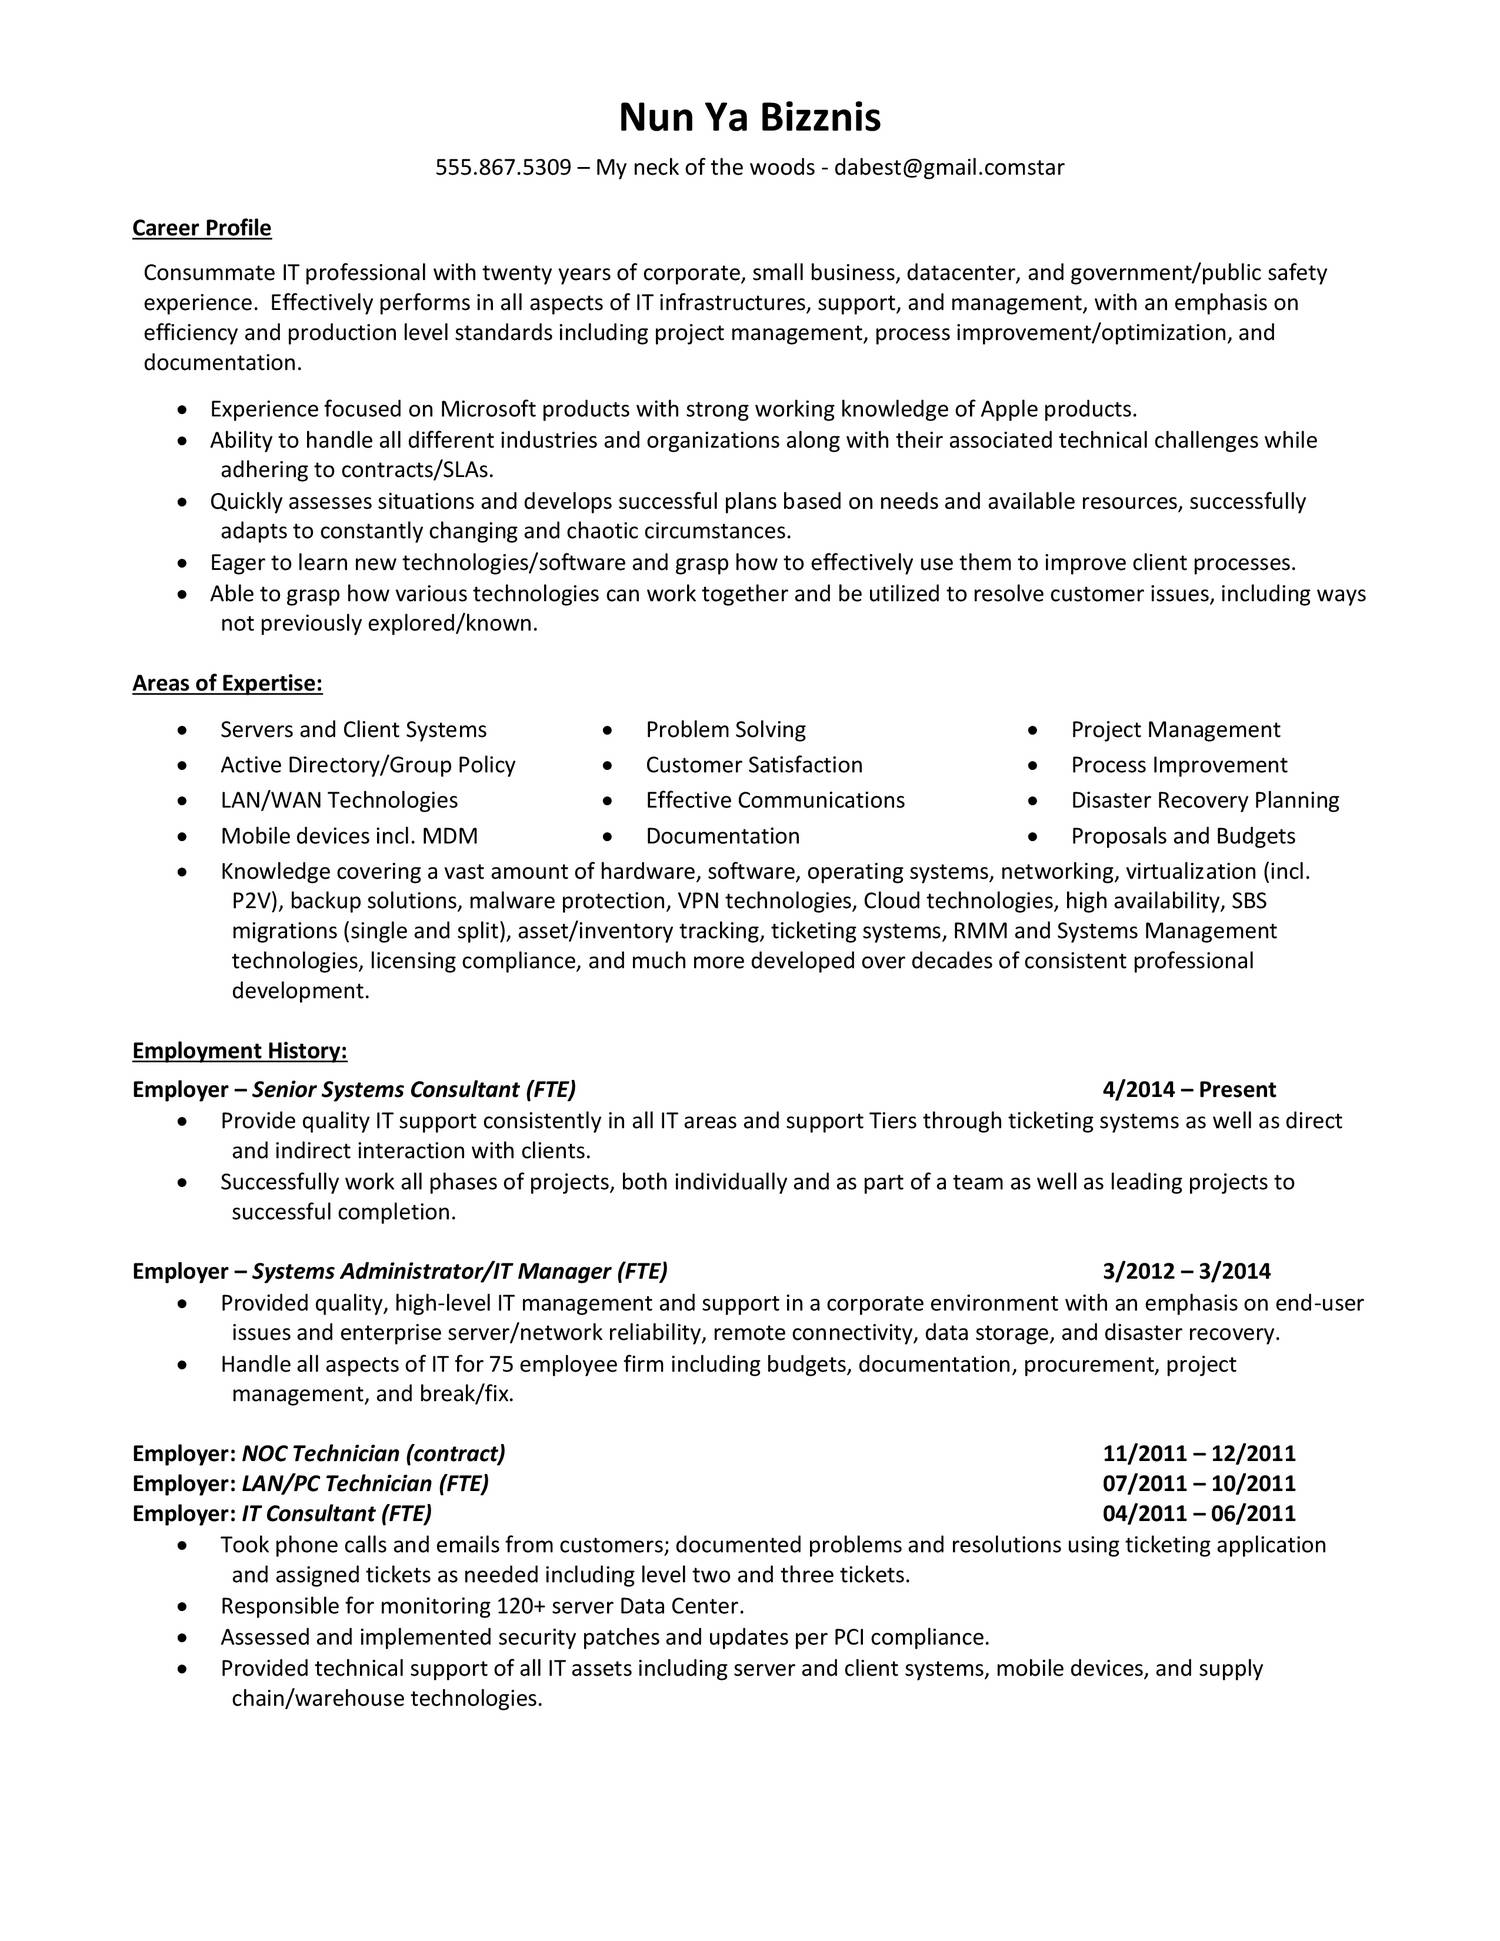 doc resume rsums typography for lawyers woolrich